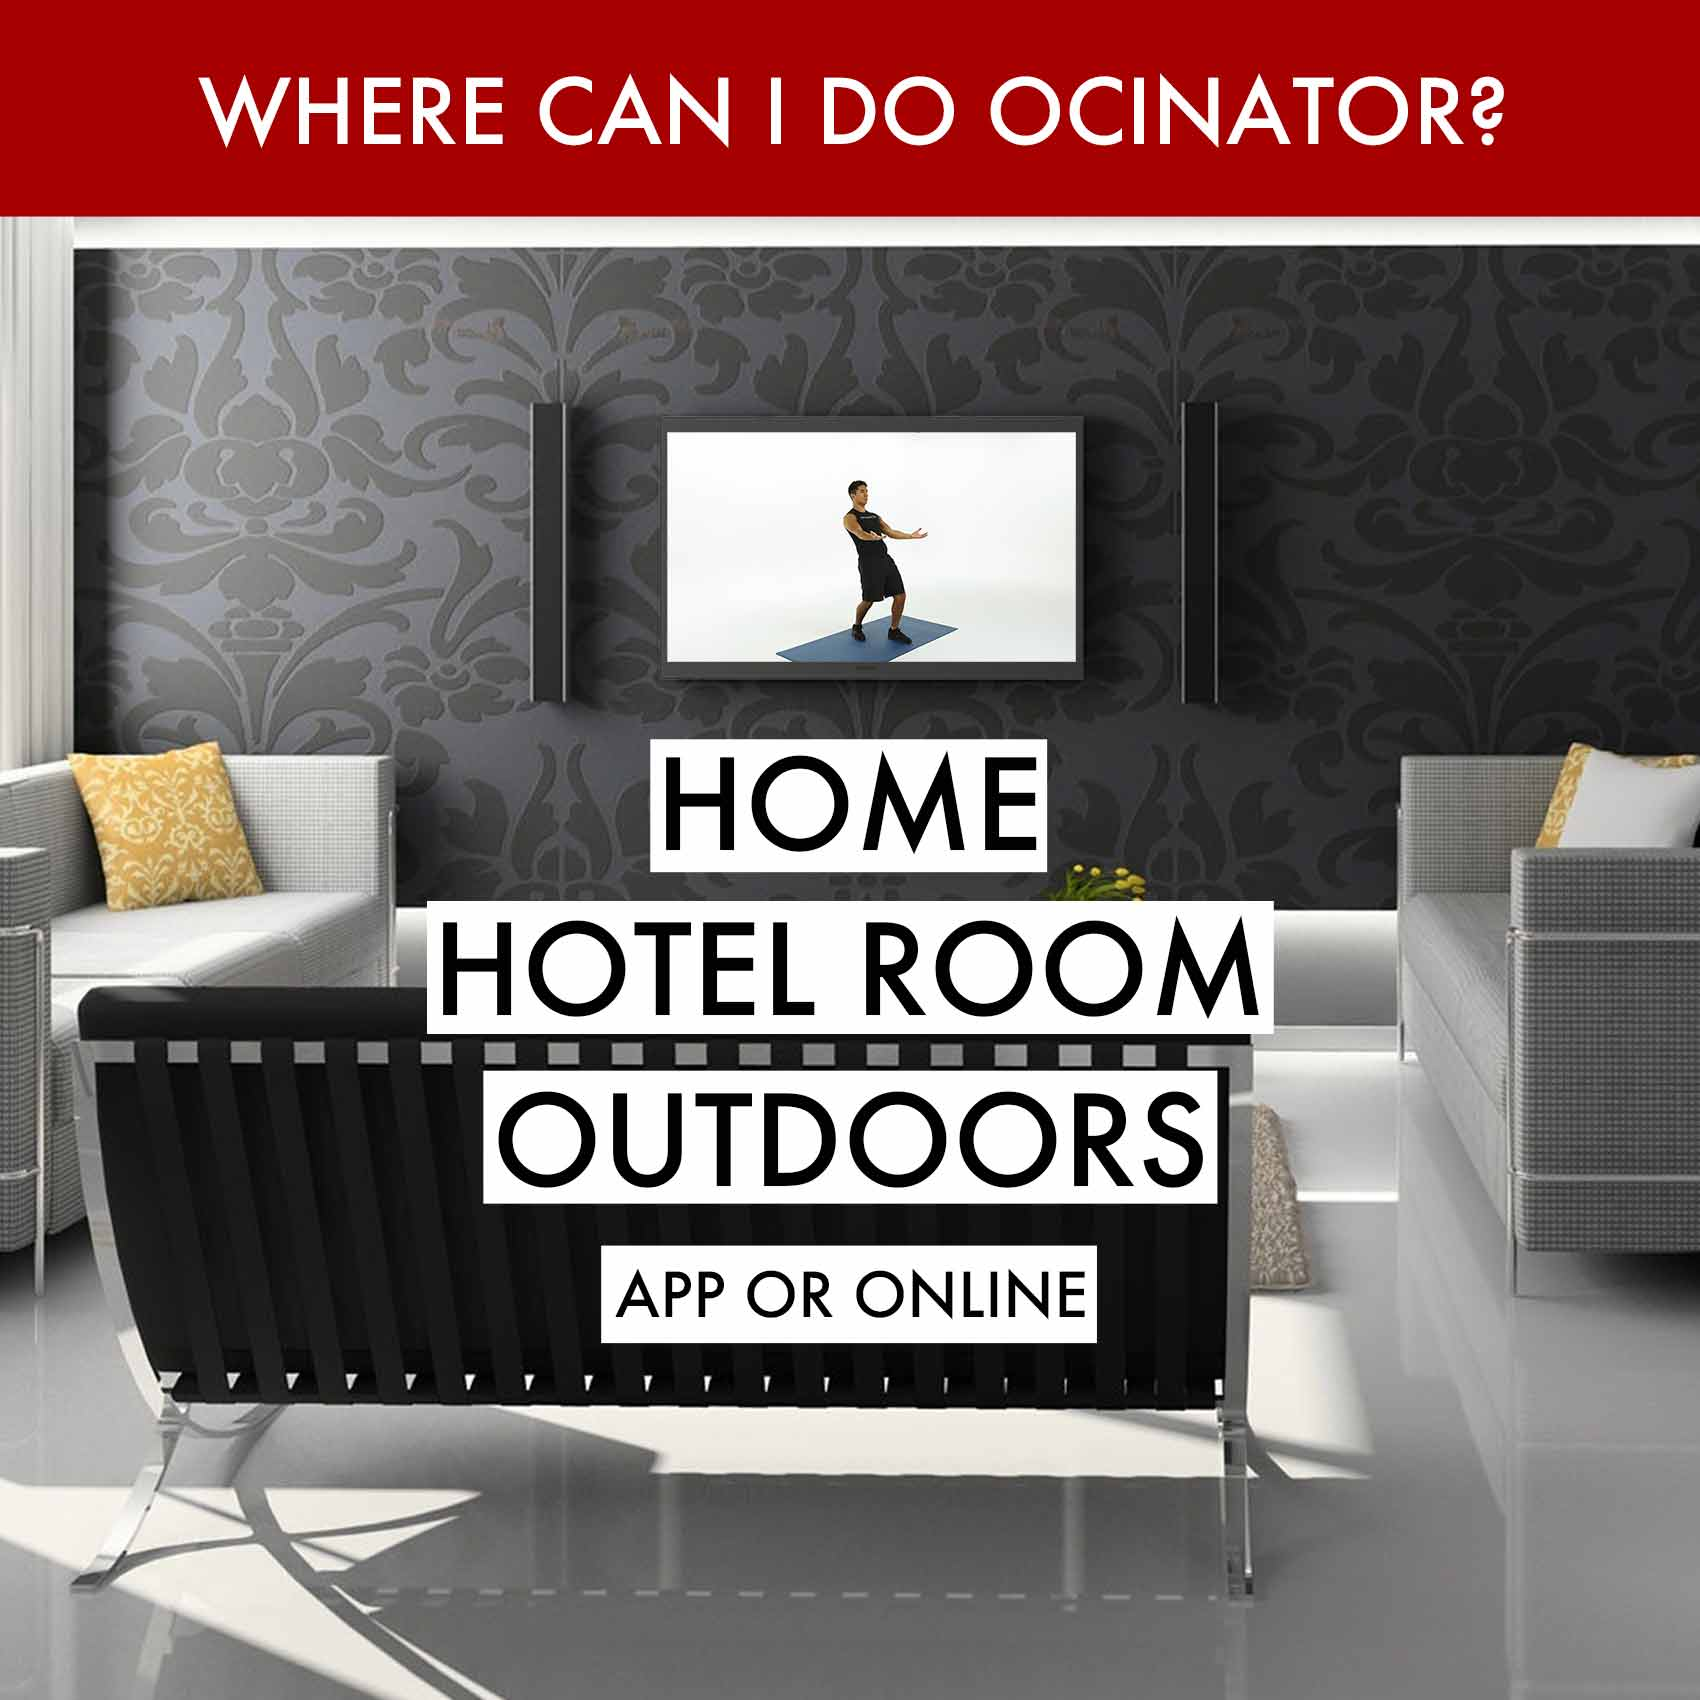 Ocinator home page where can I do Ocinator